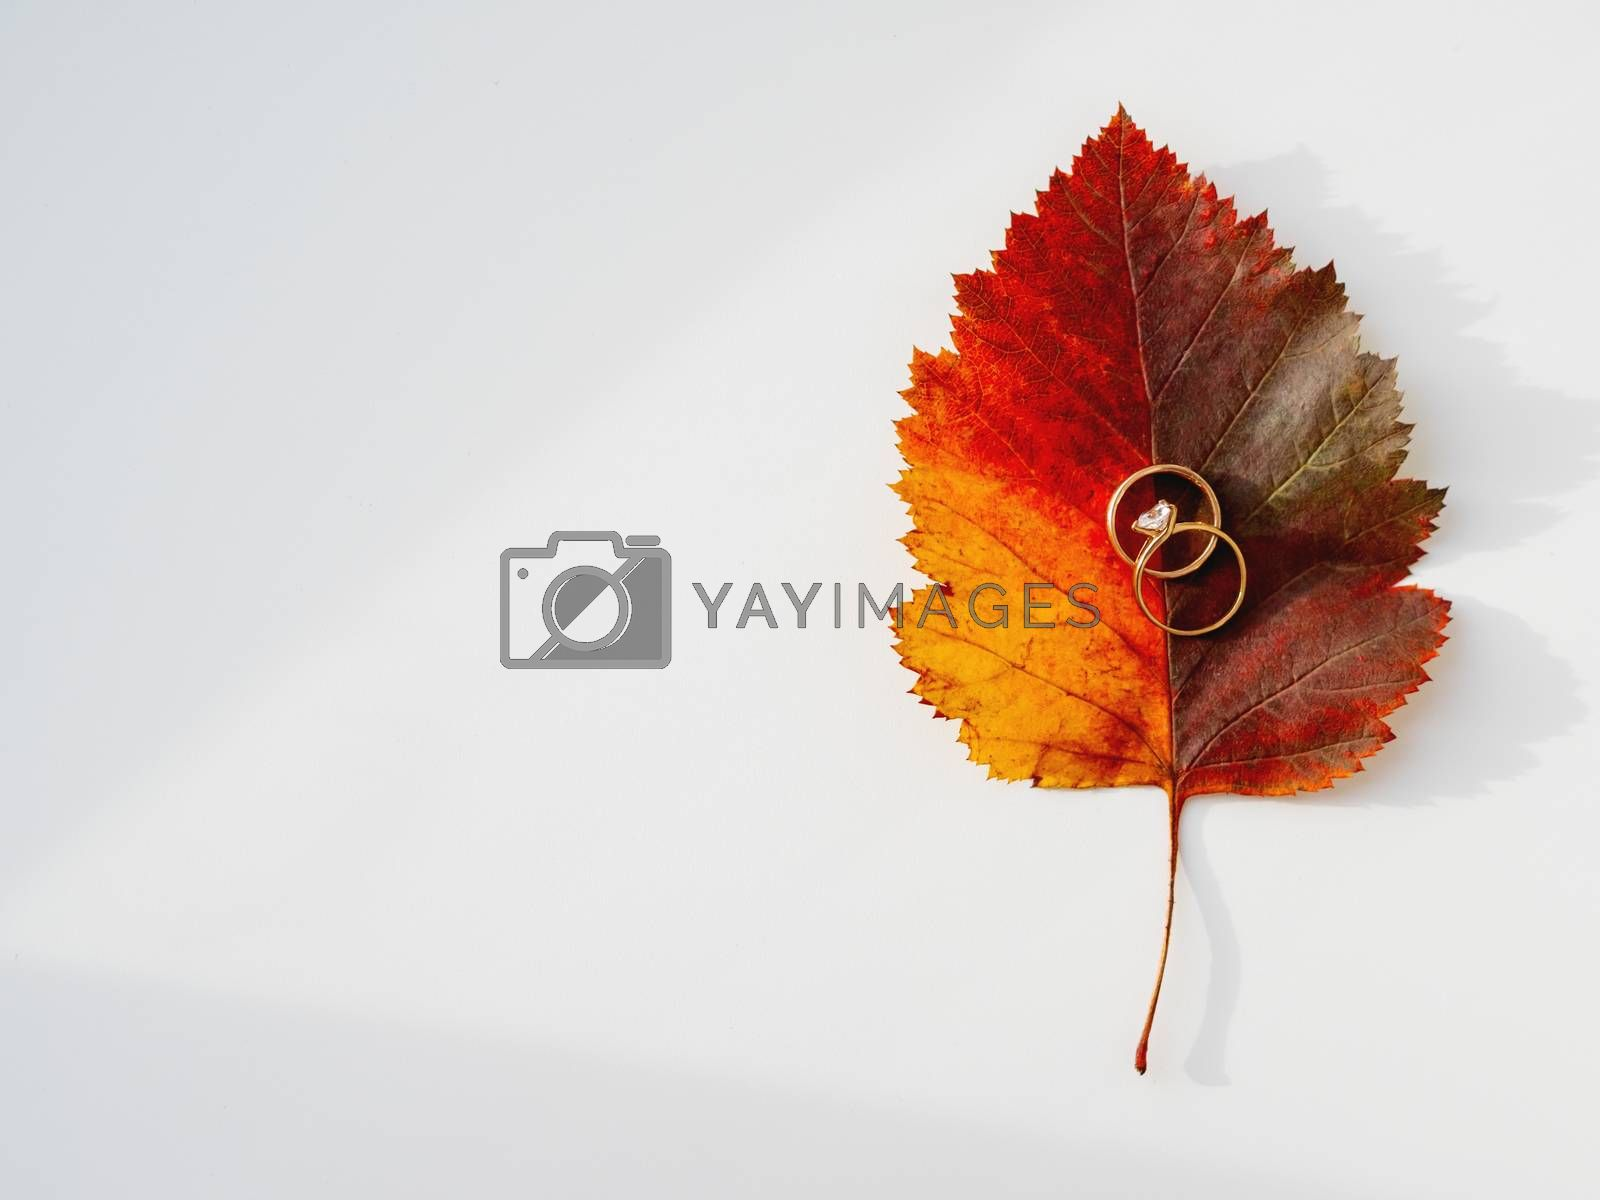 Golden wedding rings on bright and colorful autumn leaf. Top view on monochrome geometry with light and shadow. Minimalism. Fall season.